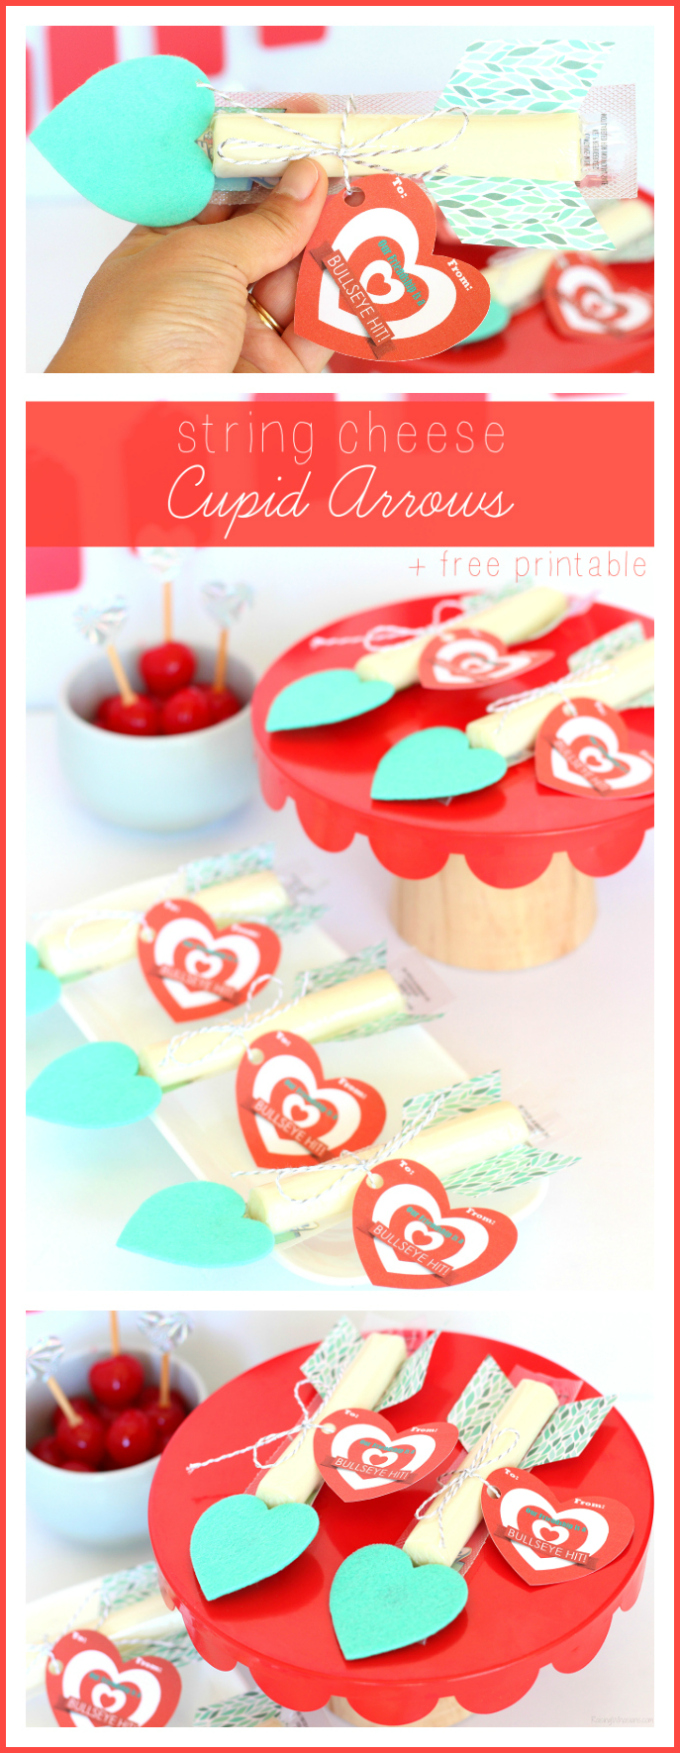 String cheese cupid arrows pinterest